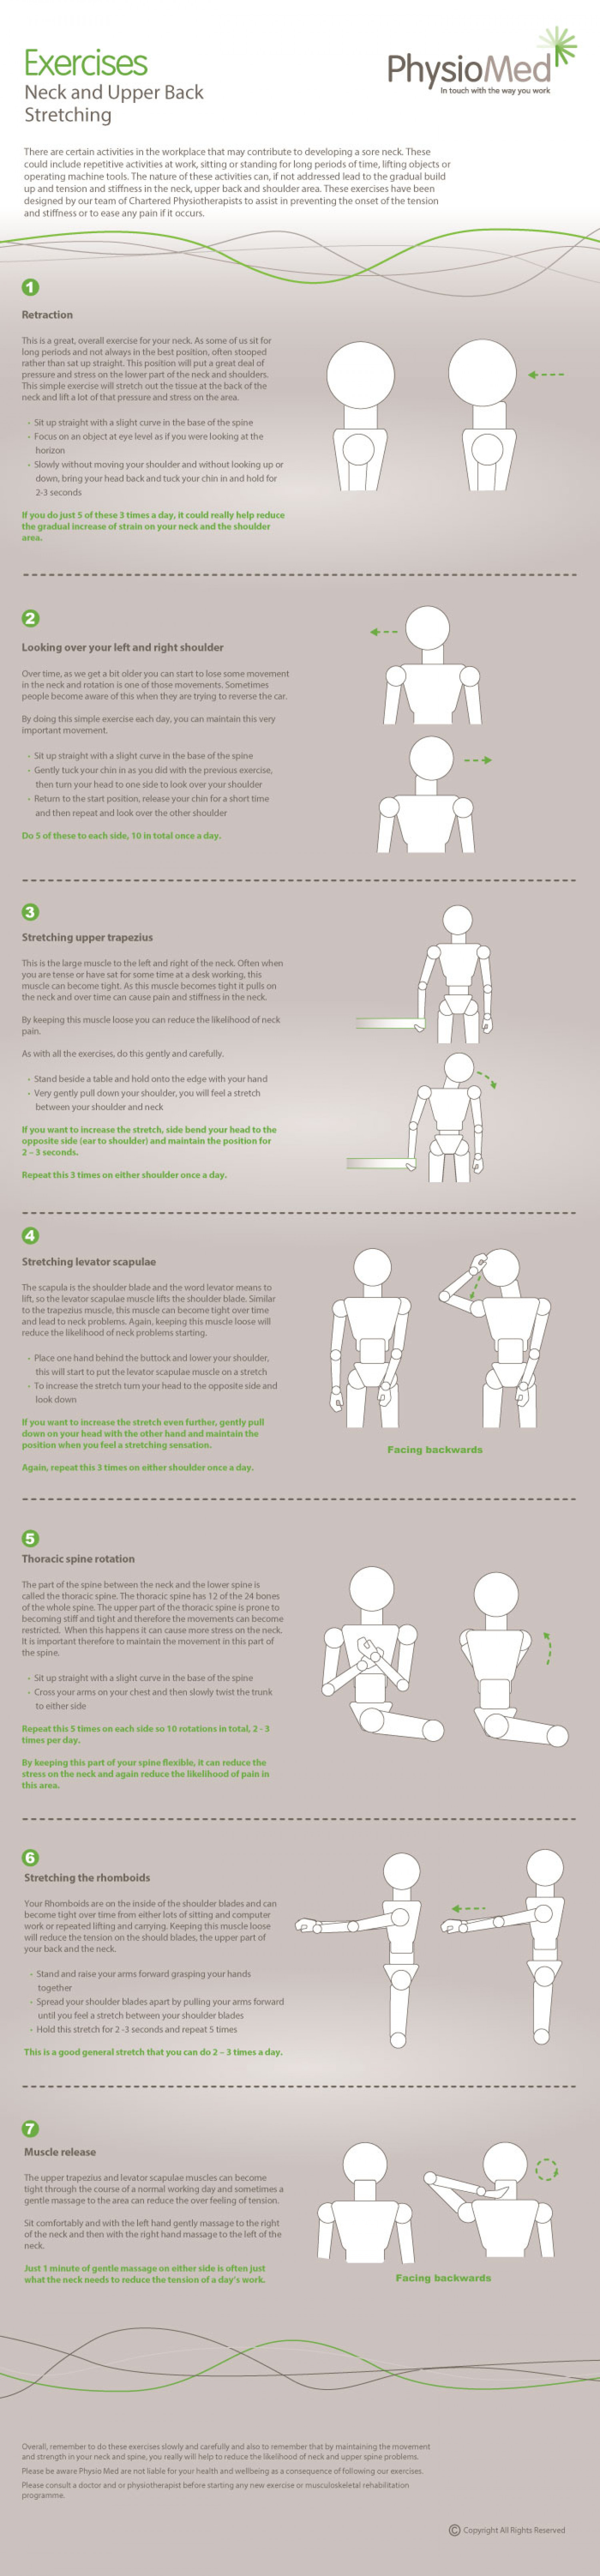 Neck and Upper Back Stretching Exercises: Occupational Physiotherapy Stretching - Physio Med Infographic